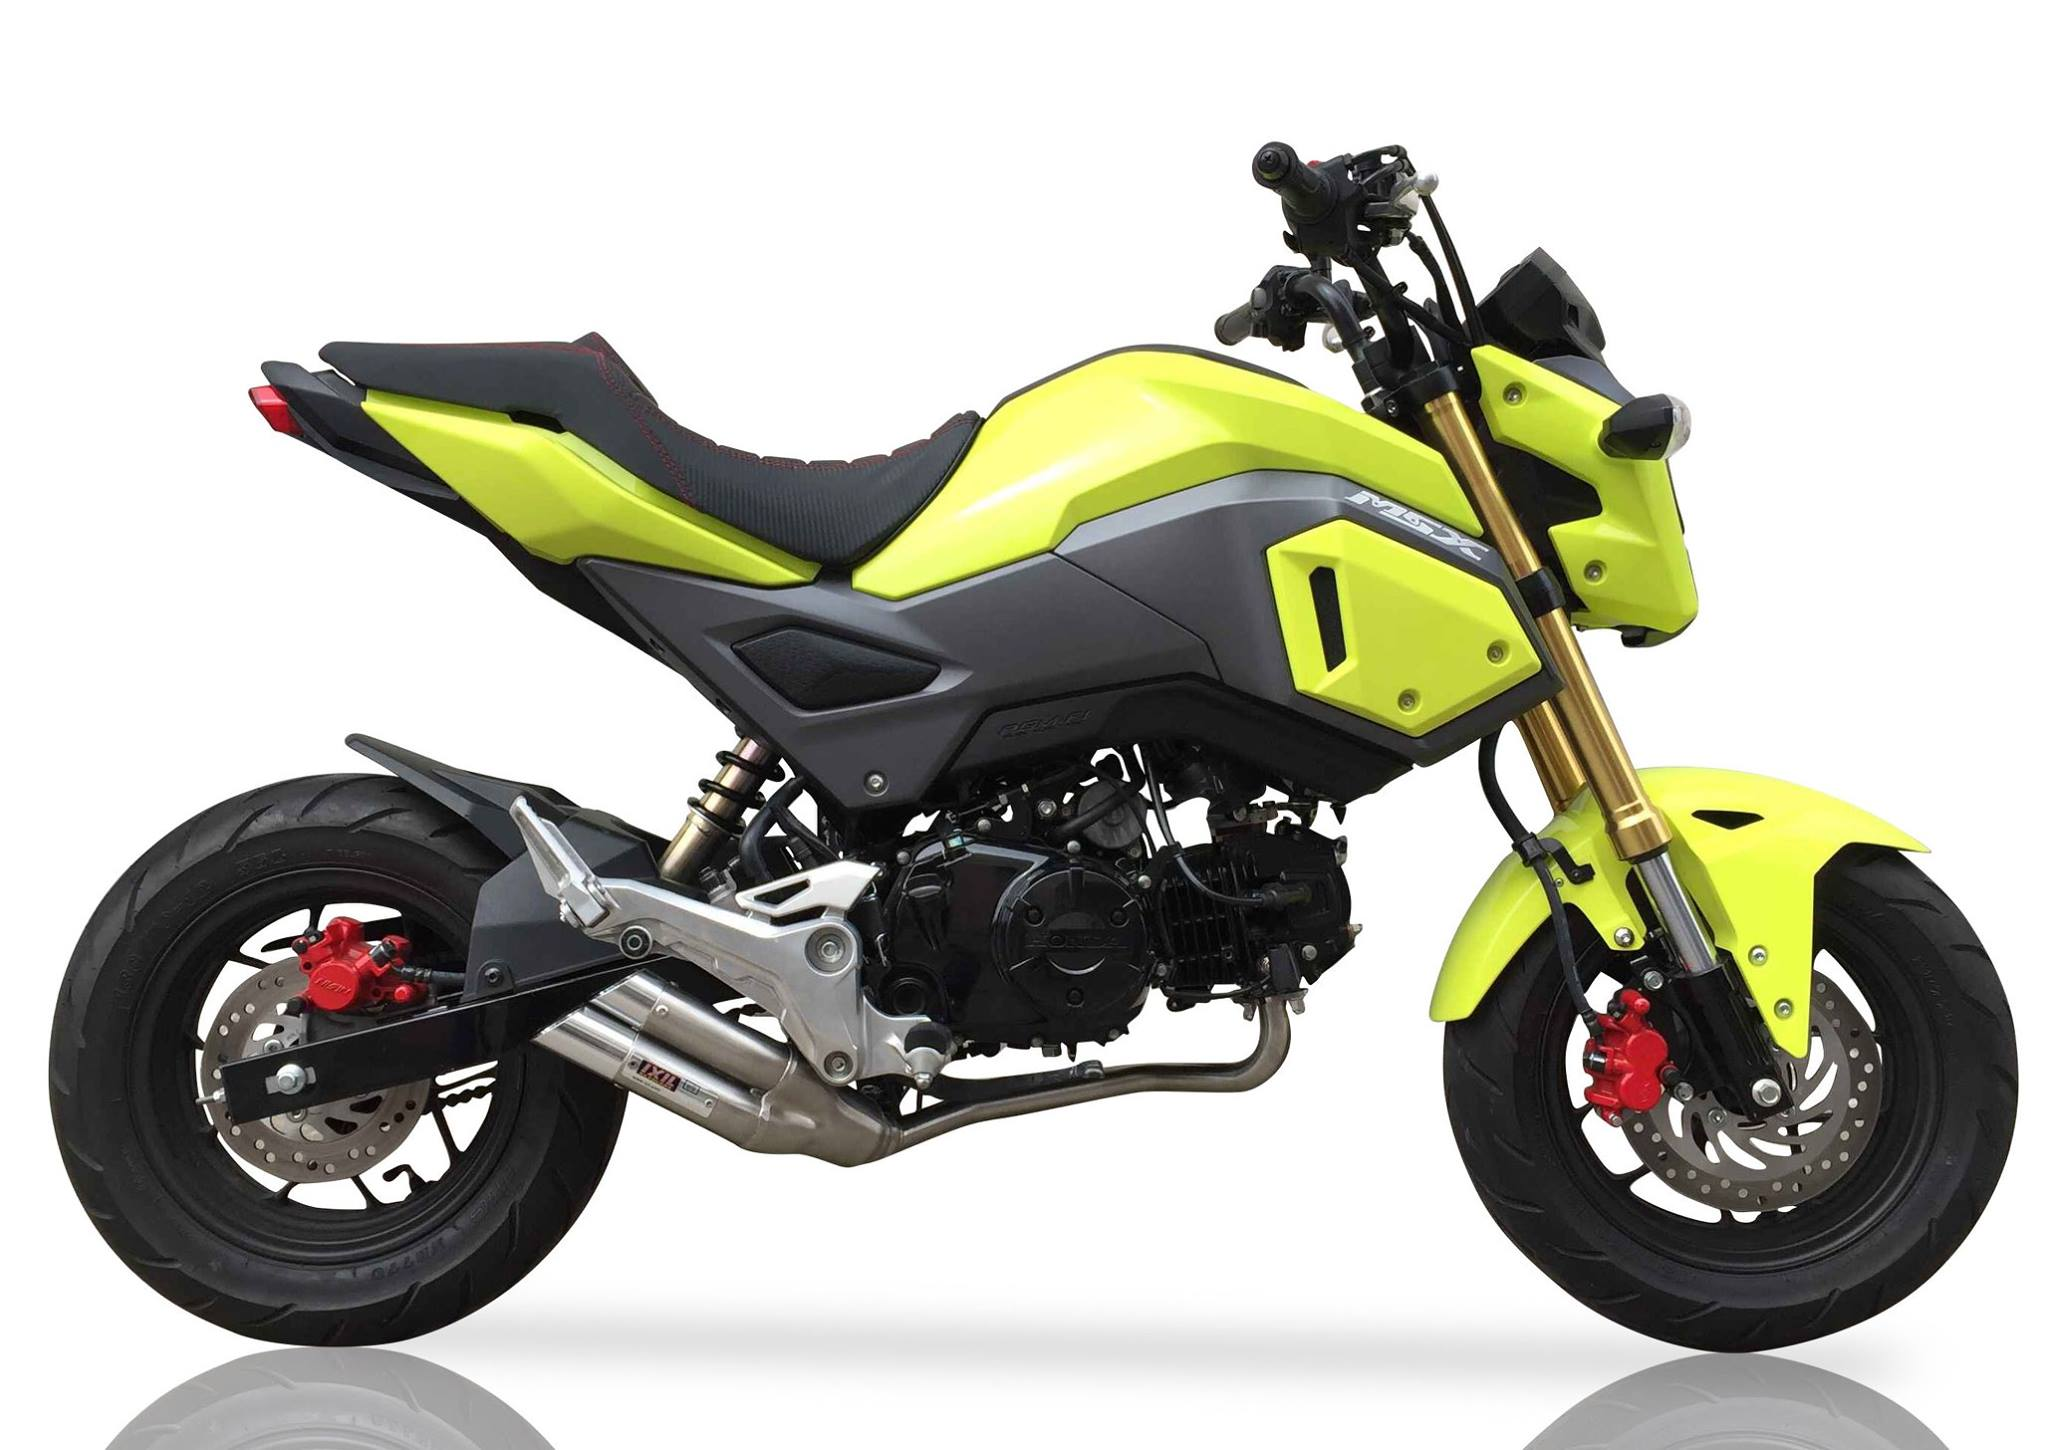 ixil hyperlow full system honda msx125 grom. Black Bedroom Furniture Sets. Home Design Ideas